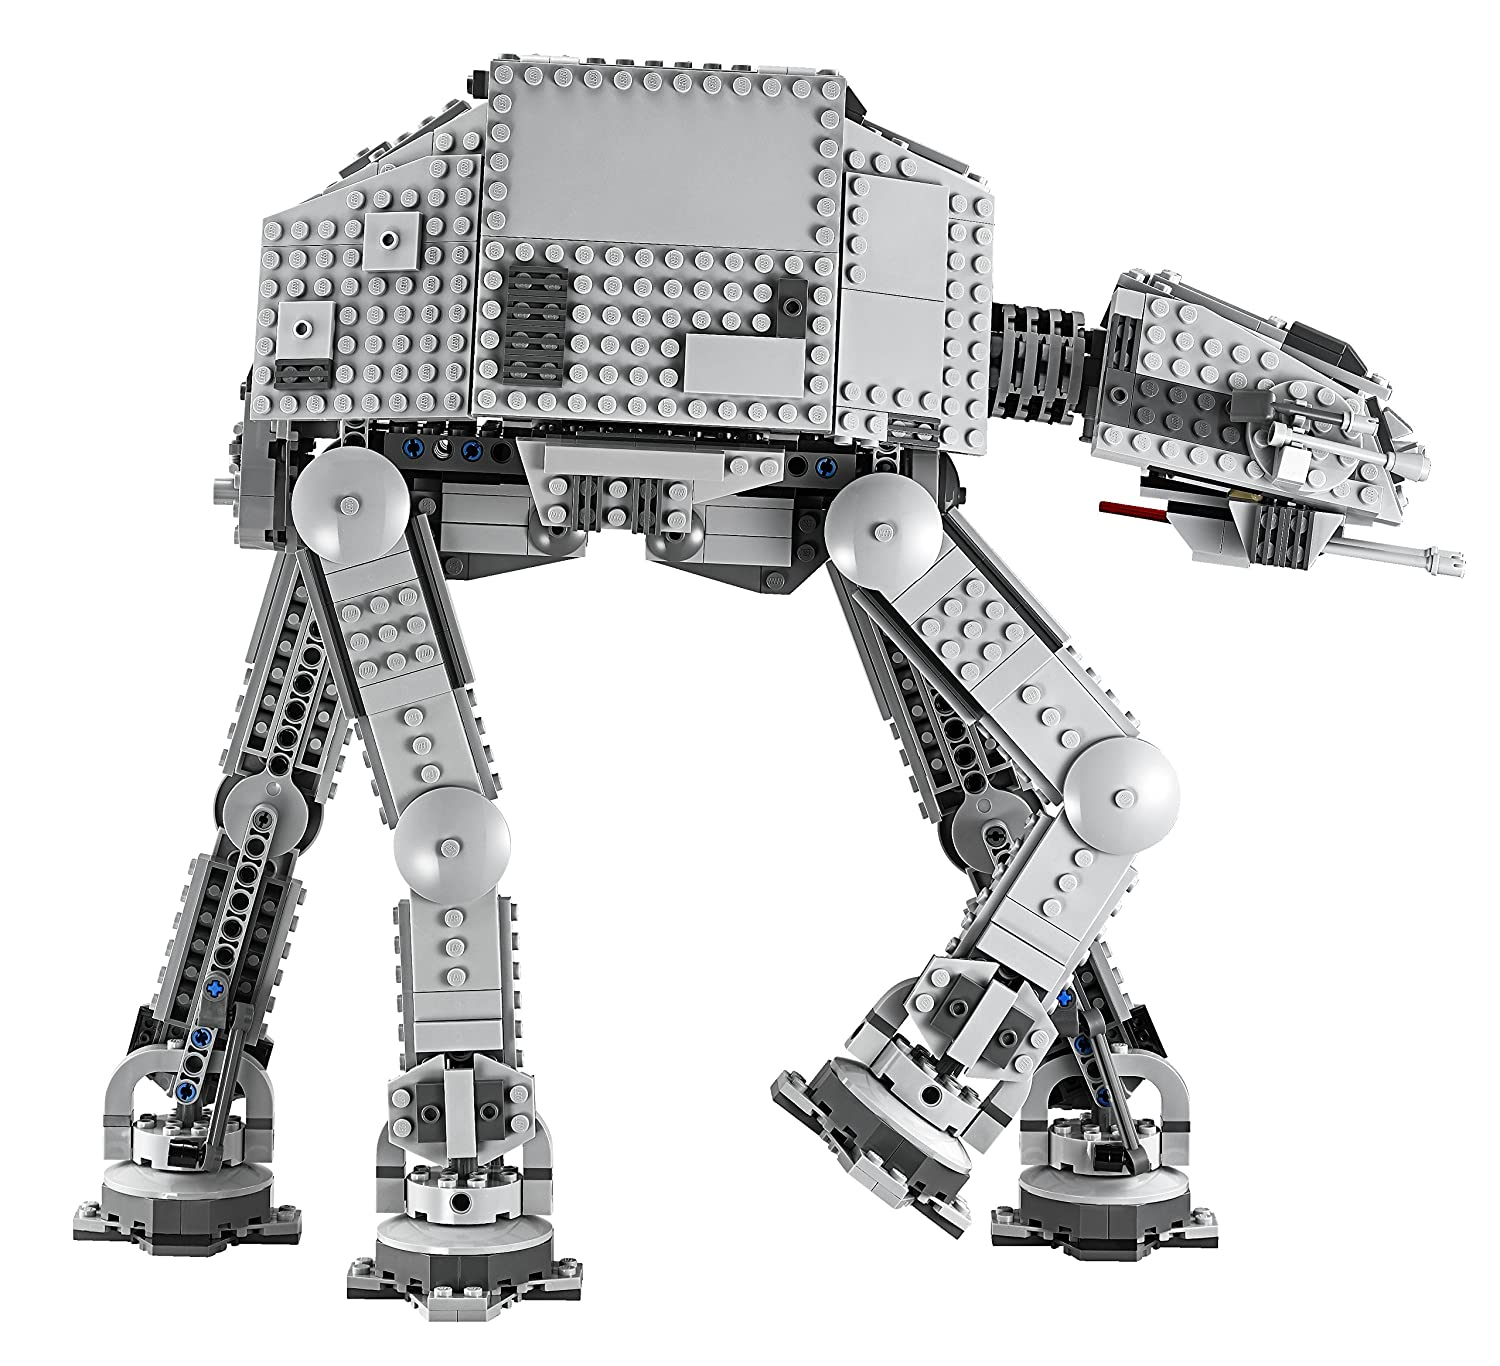 LEGO Star Wars 75054 AT-AT Building Toy 6061437 Discontinued by manufacturer